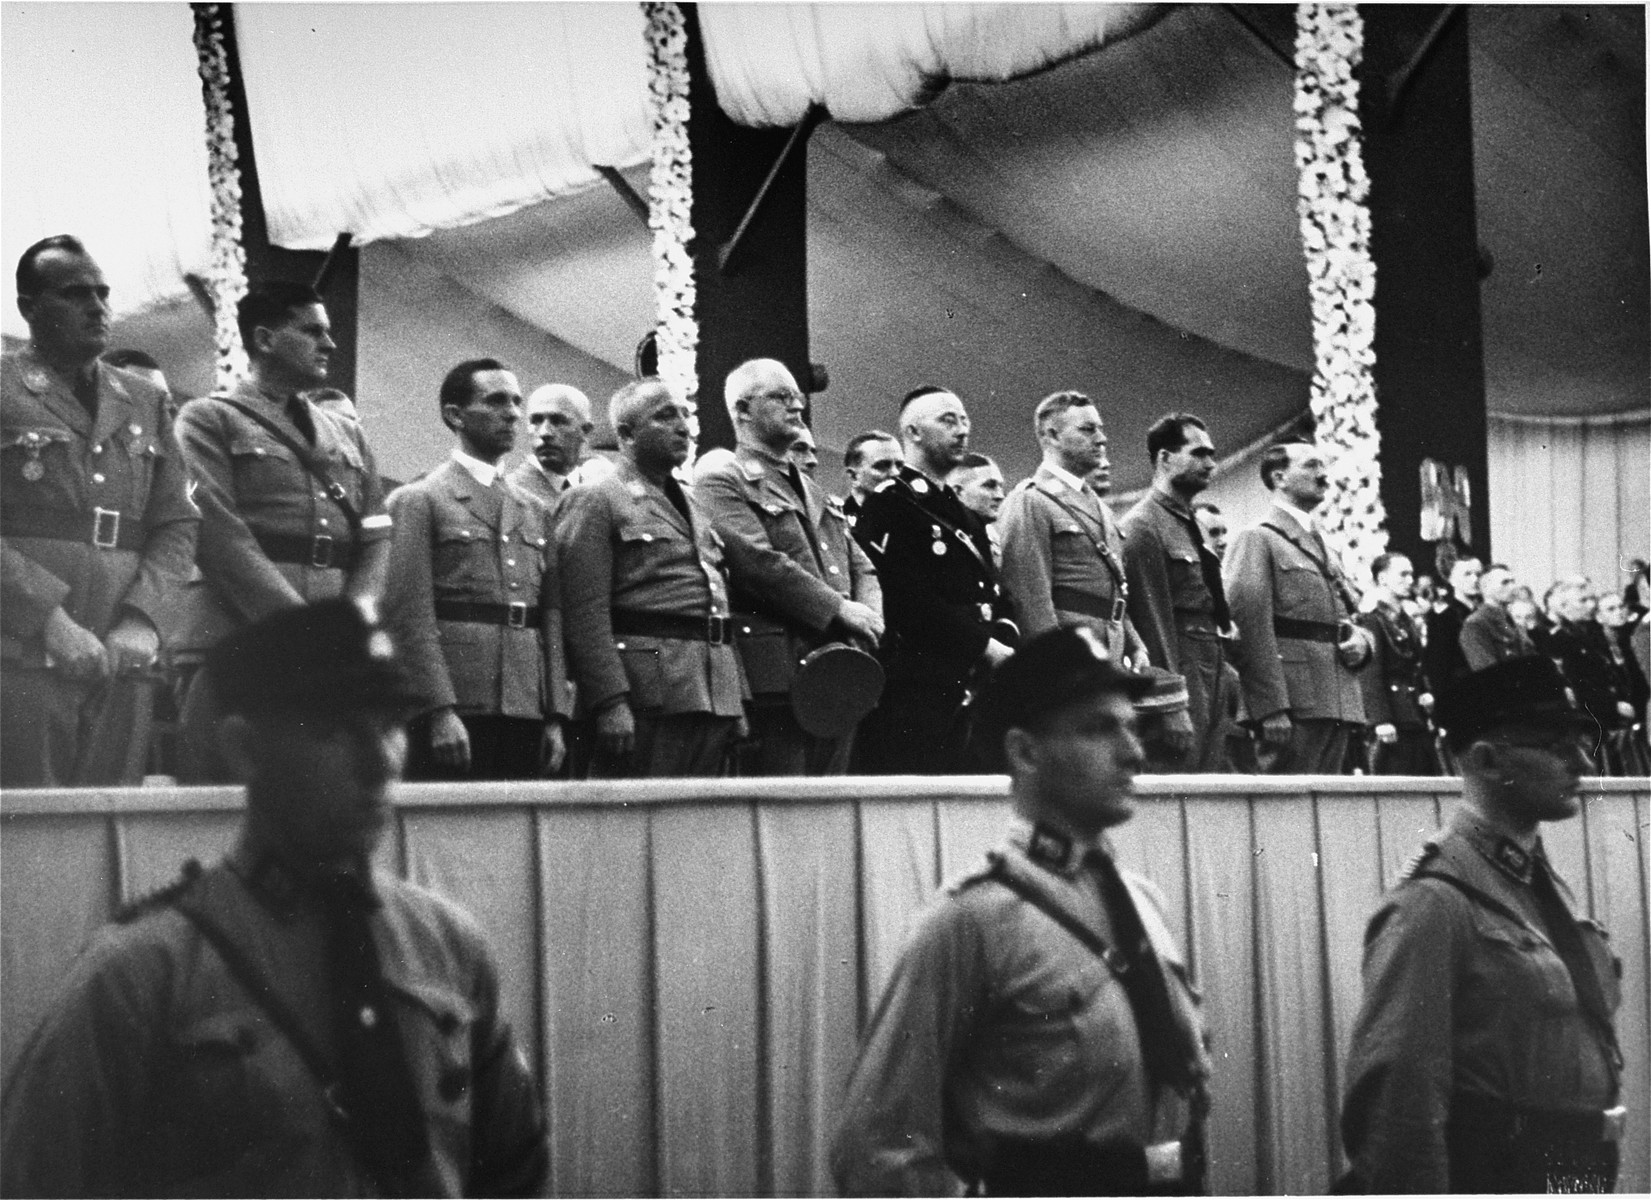 Adolf Hitler stands on a podium in the Luitpold Hall in Nuremberg with Rudolf Hess, Heinrich Himmler, and Joseph Goebbels during Reichsparteitag (Reich Party Day) ceremonies.    This image is from an SS album.